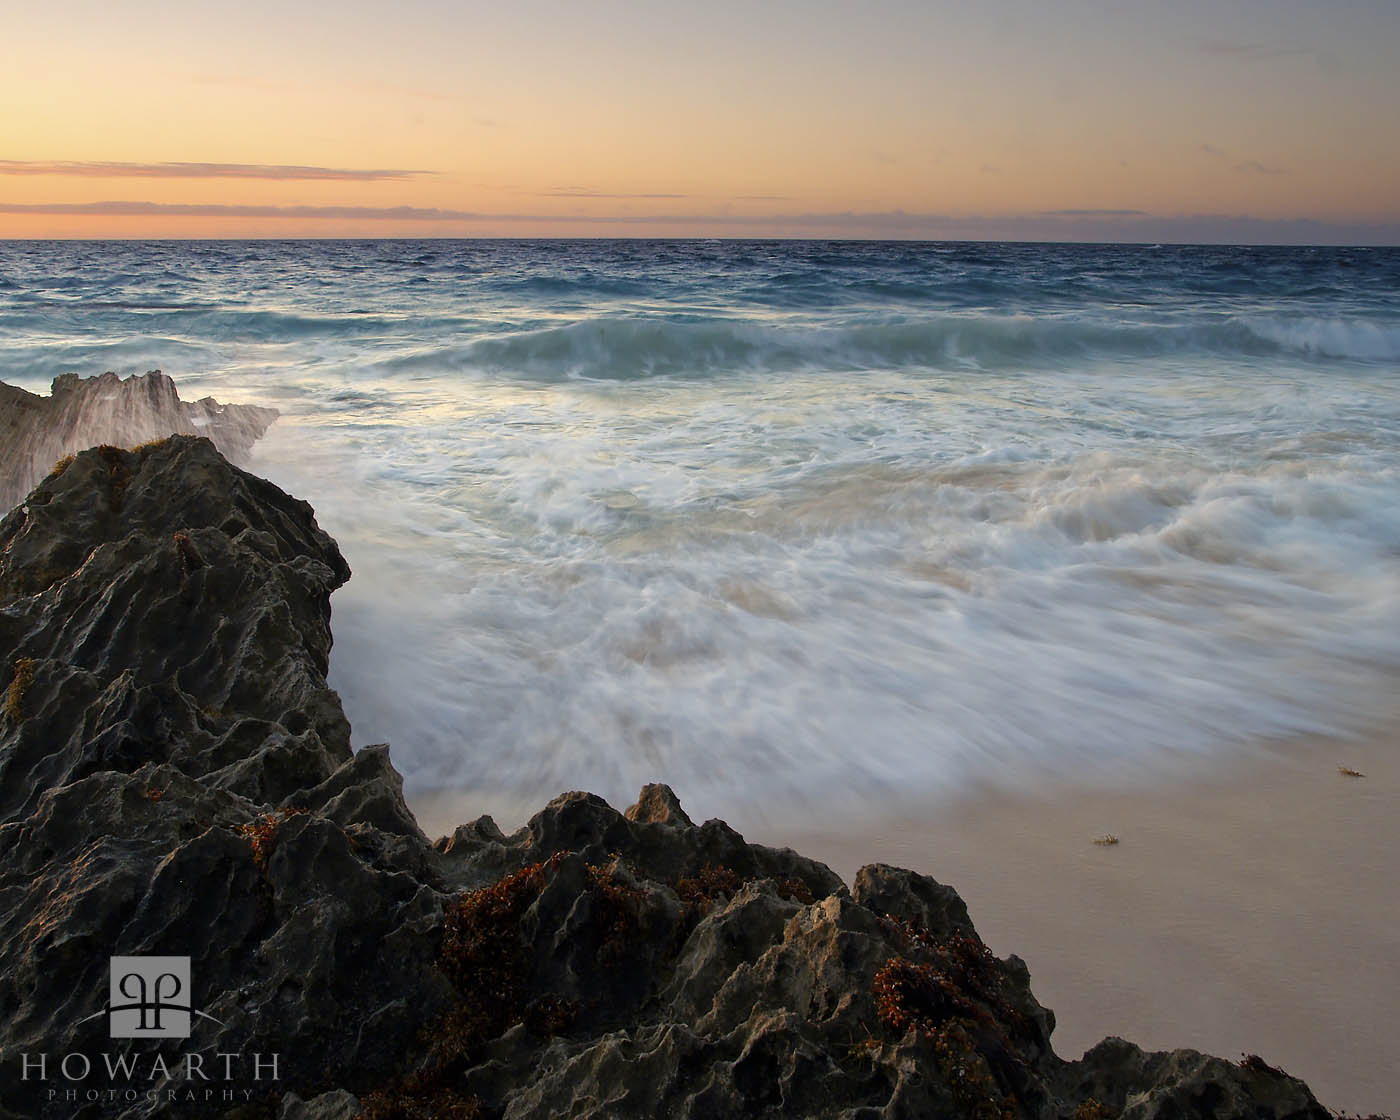 rush, swoosh, southland, beach, property, warwick, incoming, wave, photo